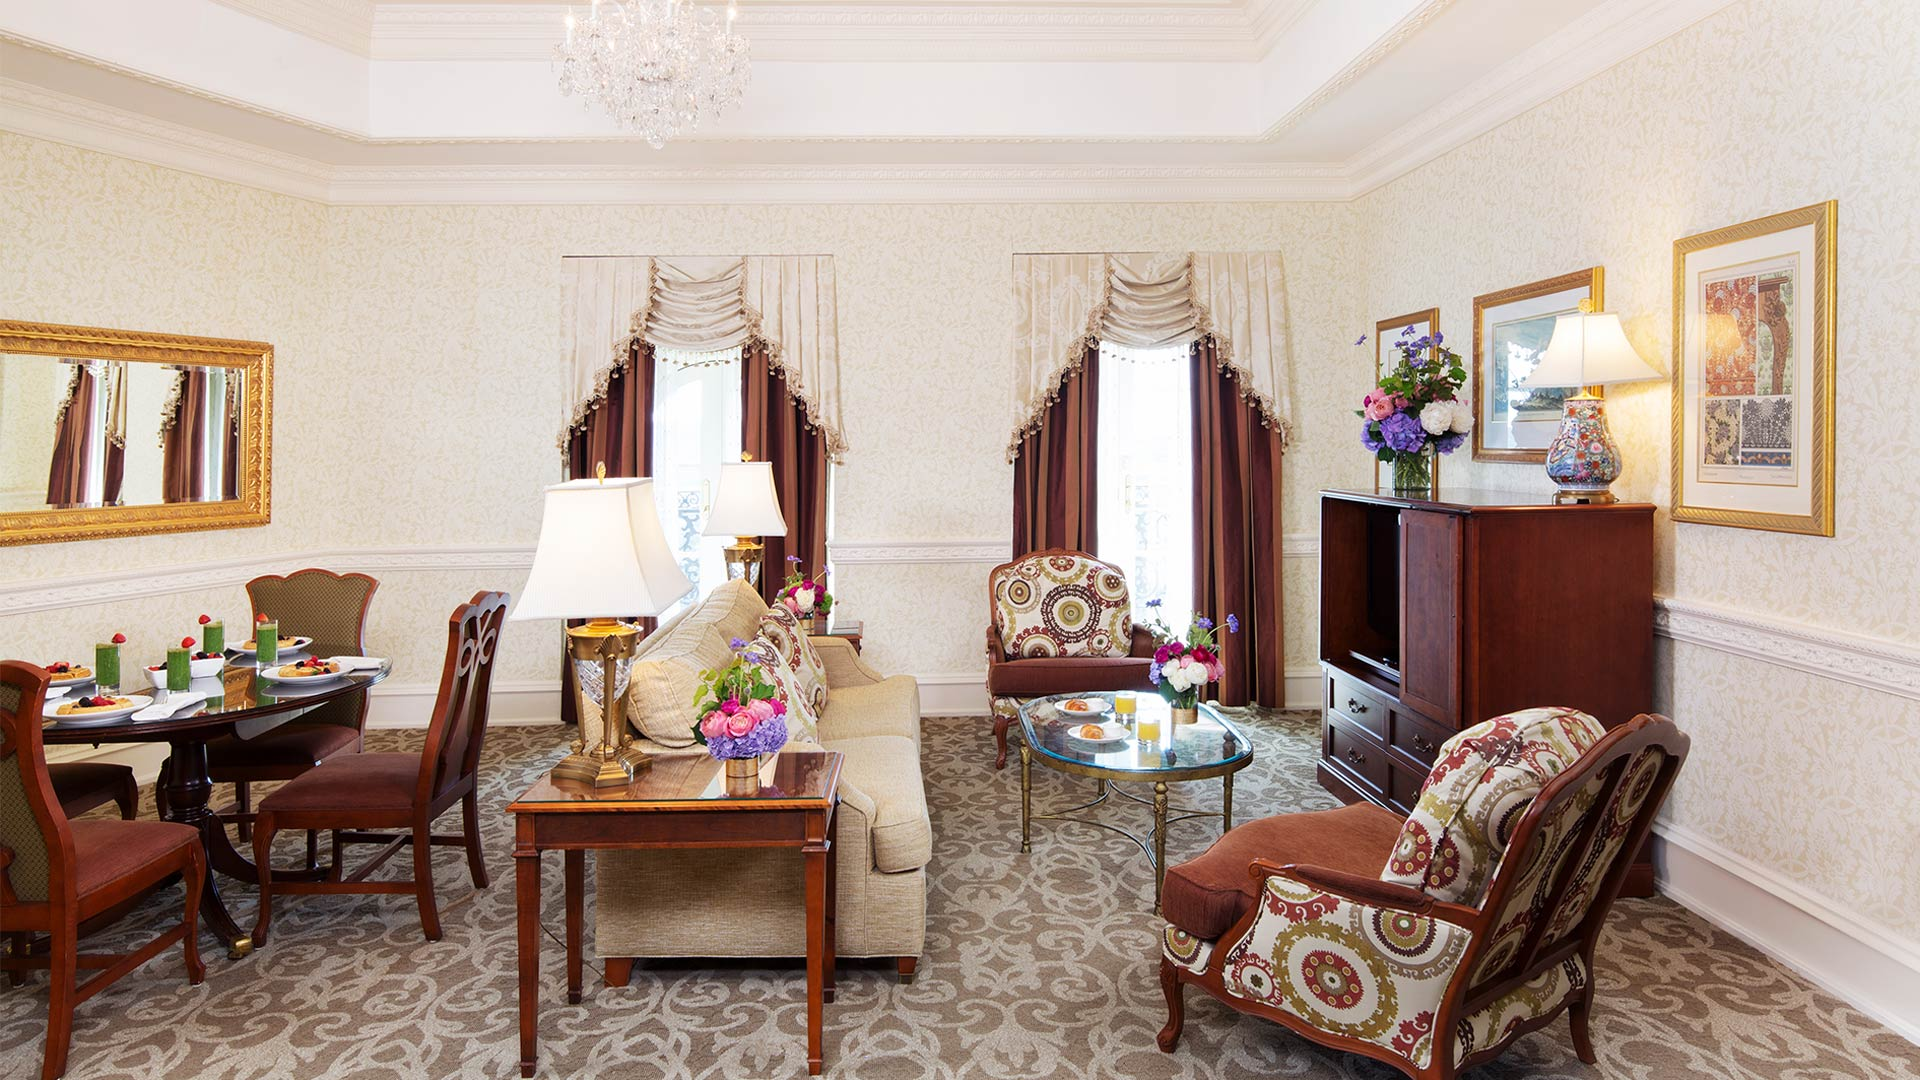 interior shot of The Chateau's club suite's sitting area. There is a plush couch, two chars and a dining room table. There is also a TV and two windows with views of the resort.